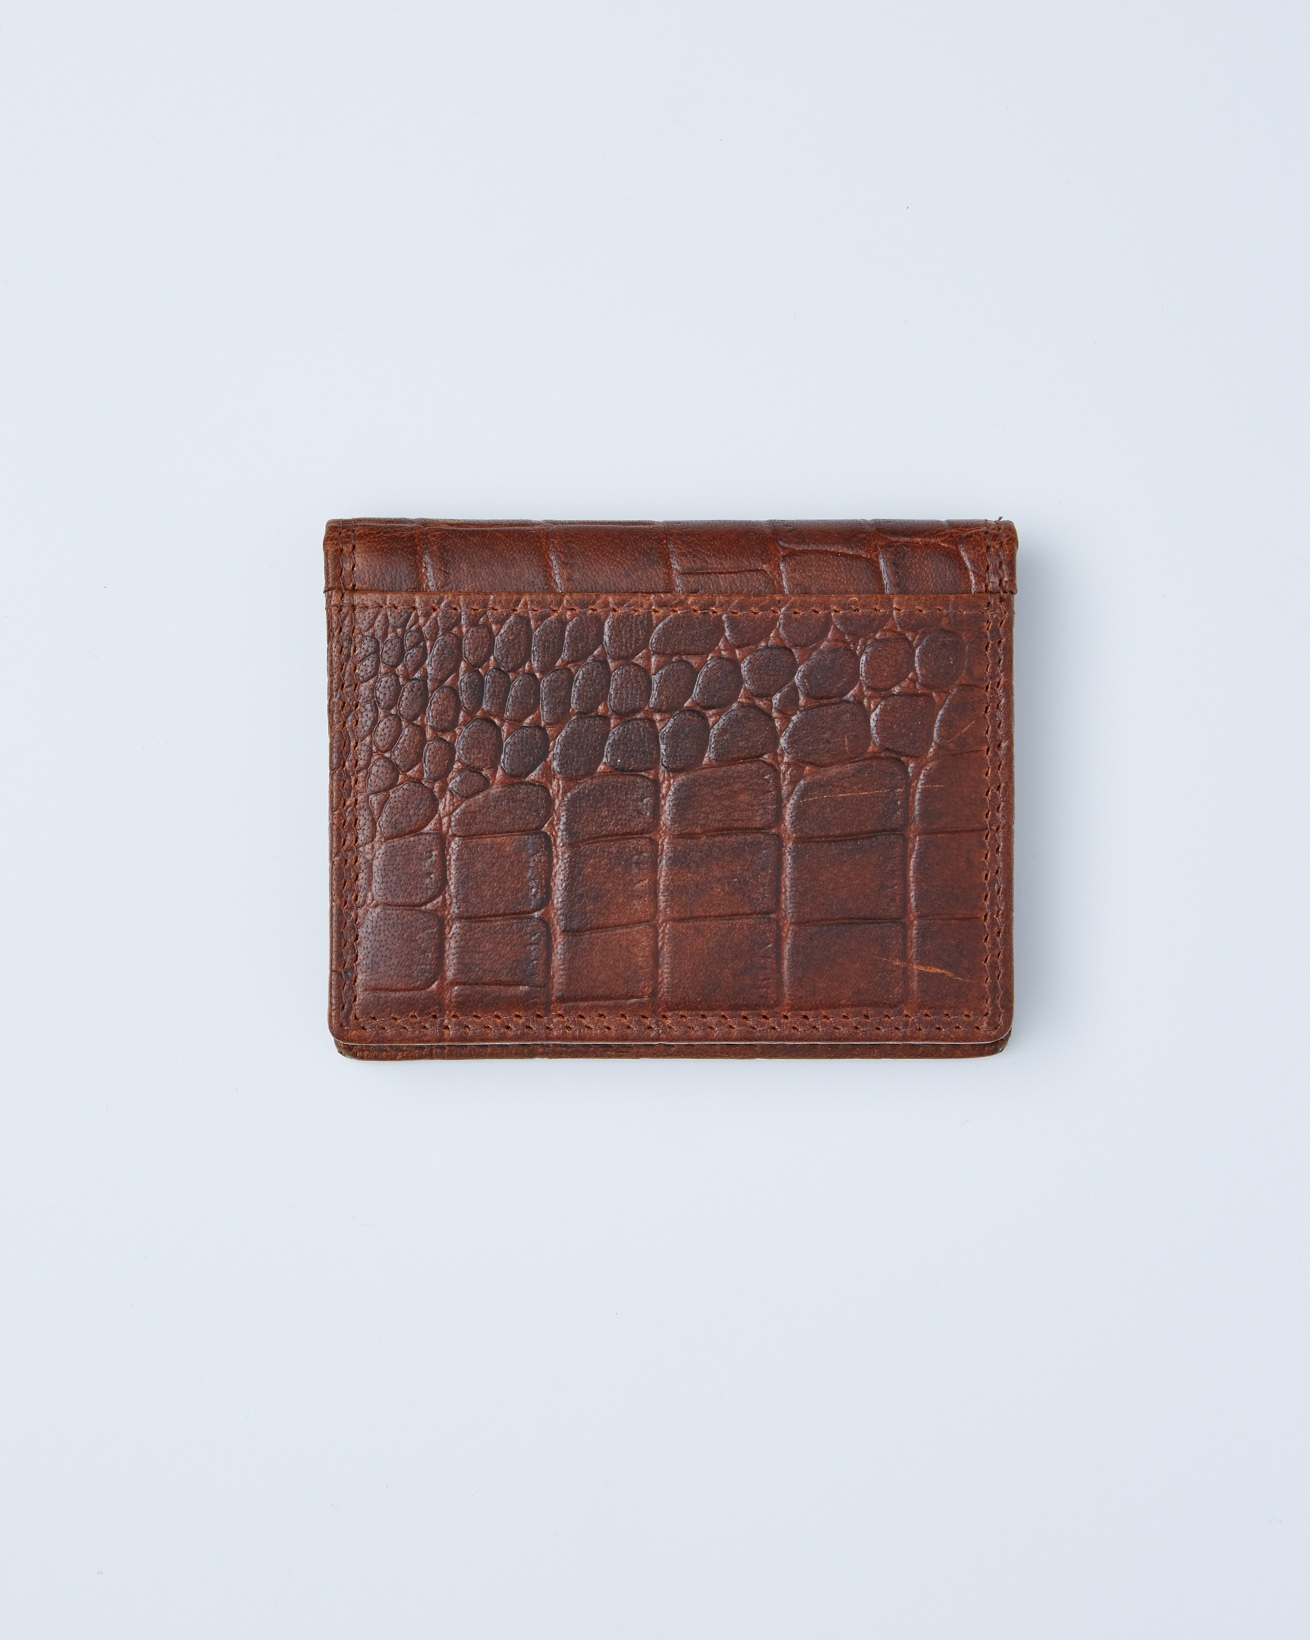 Leather Credit Card Holder Style 2 - One/Size -  Burnt Honey - 2409